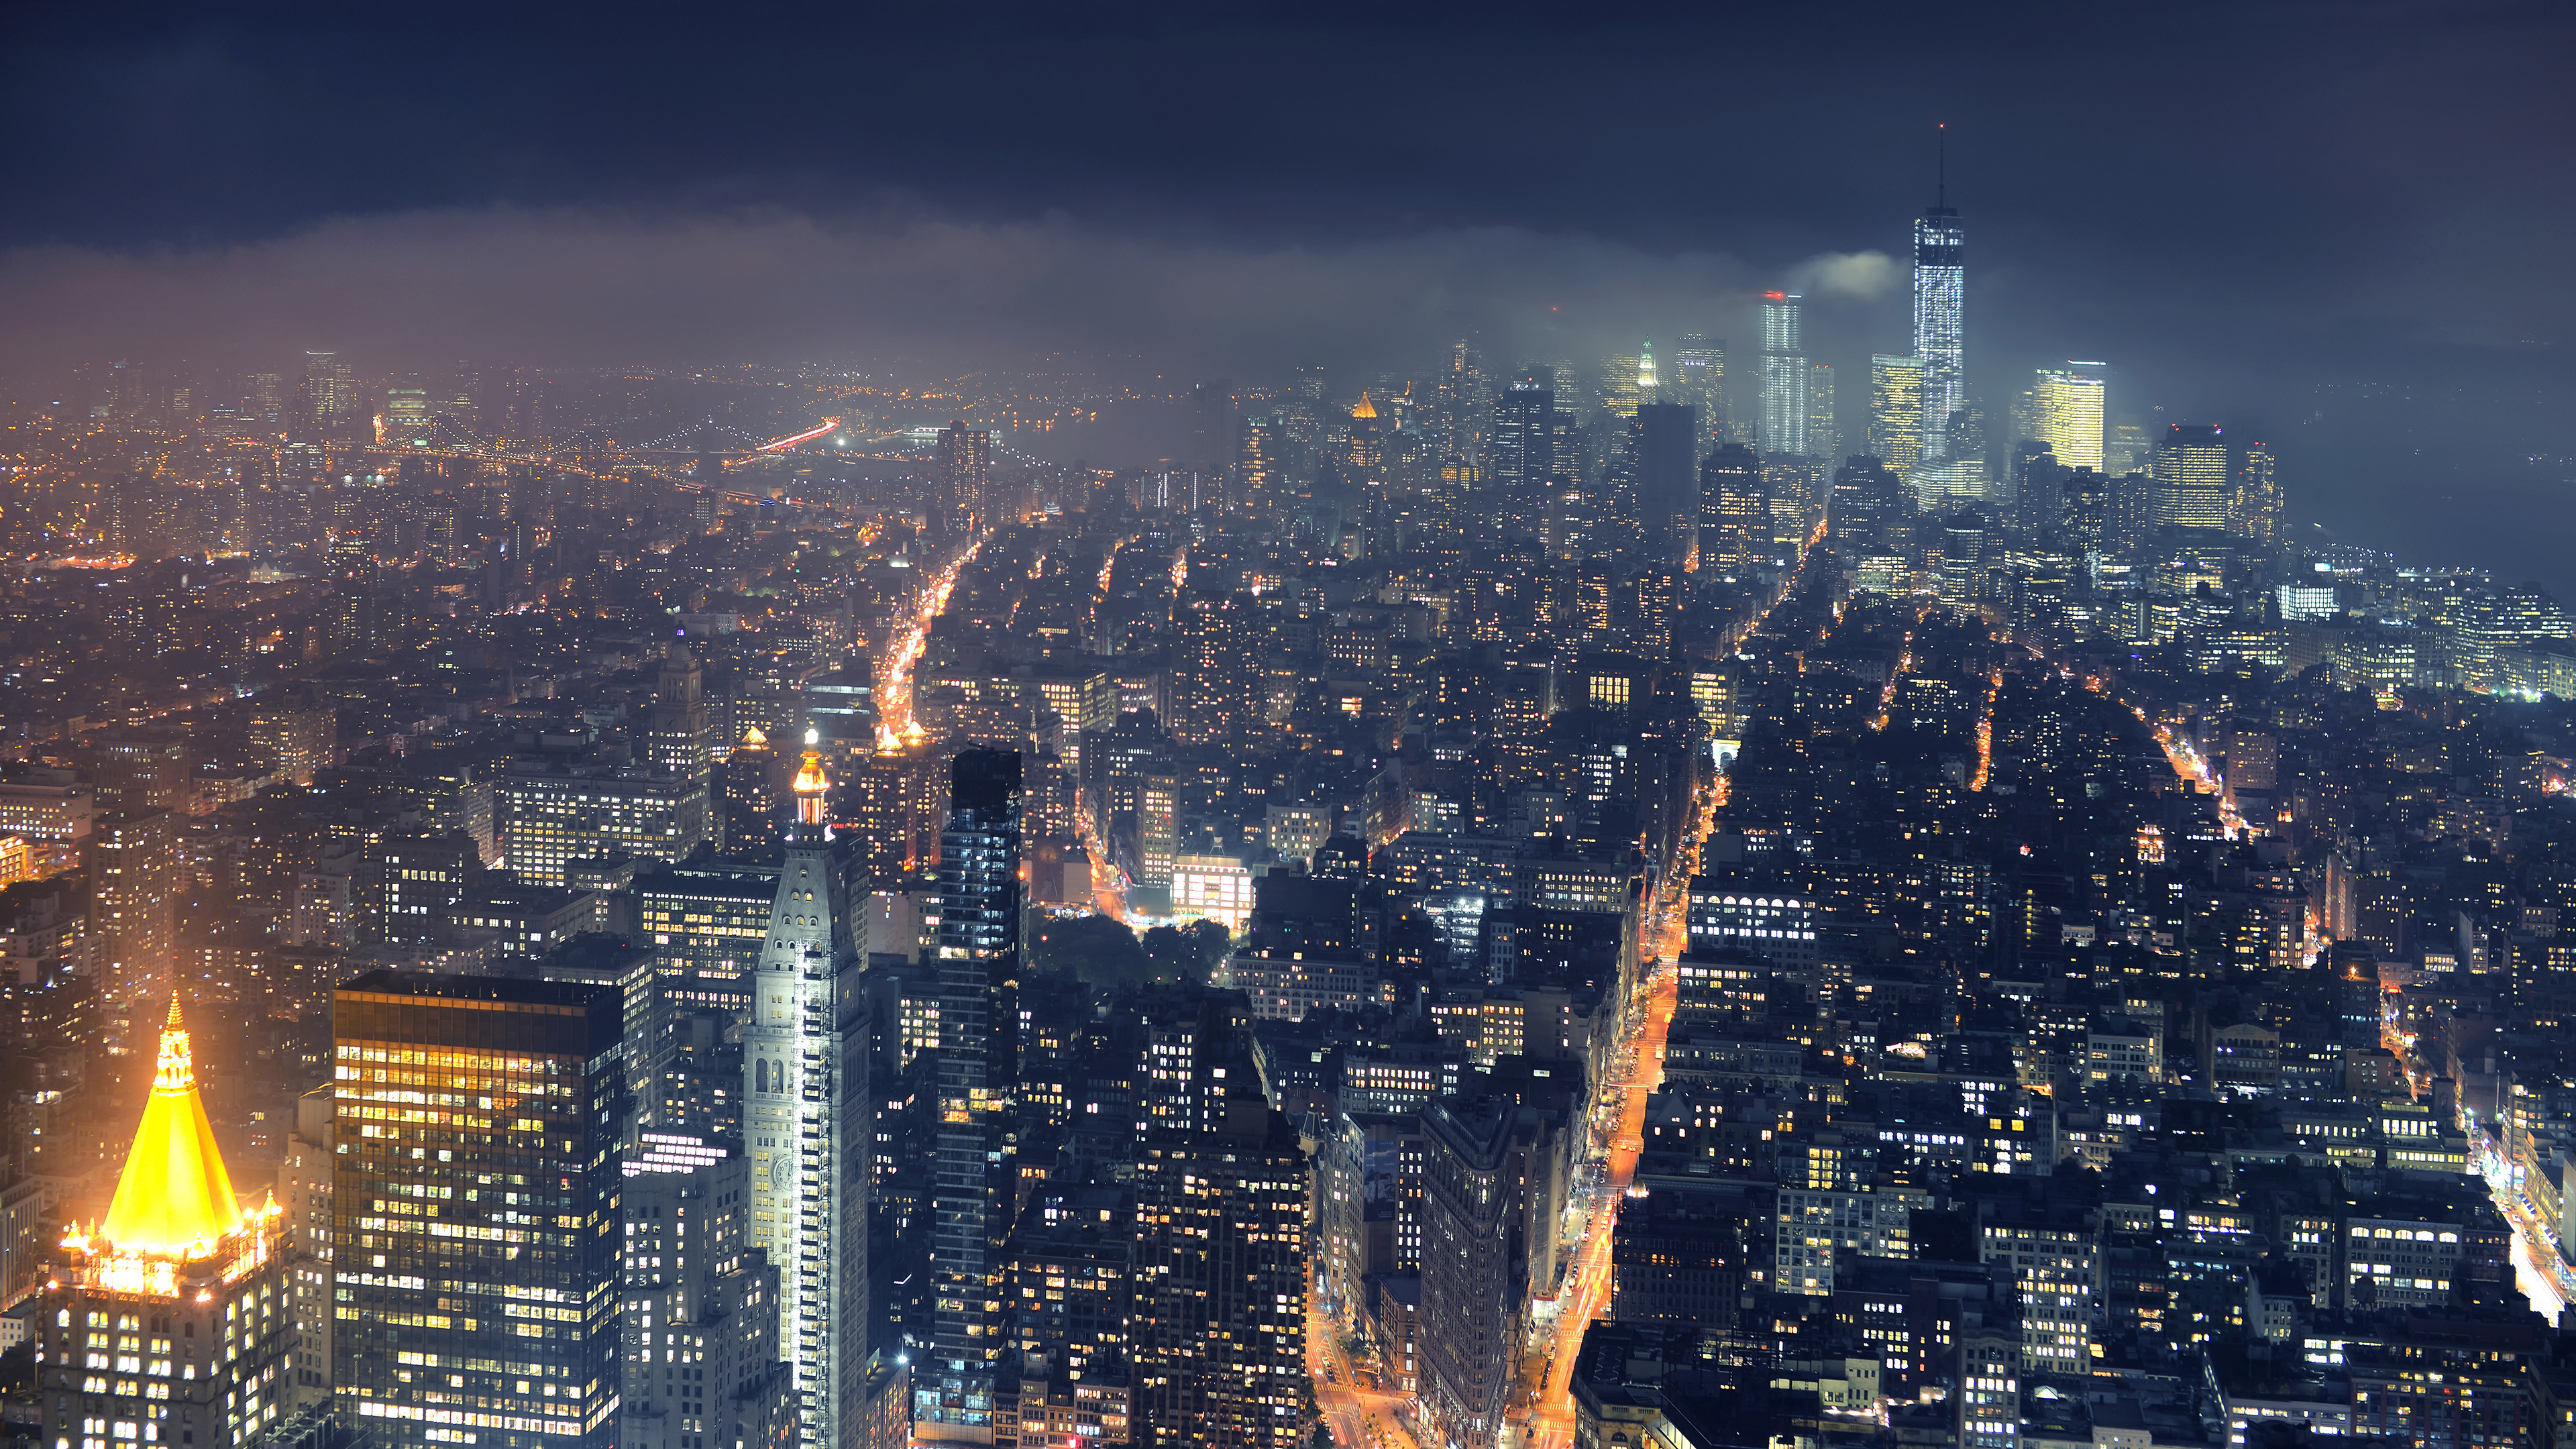 3840x2160 HD Wallpaper | Background Image ID:456536.  Man Made New York